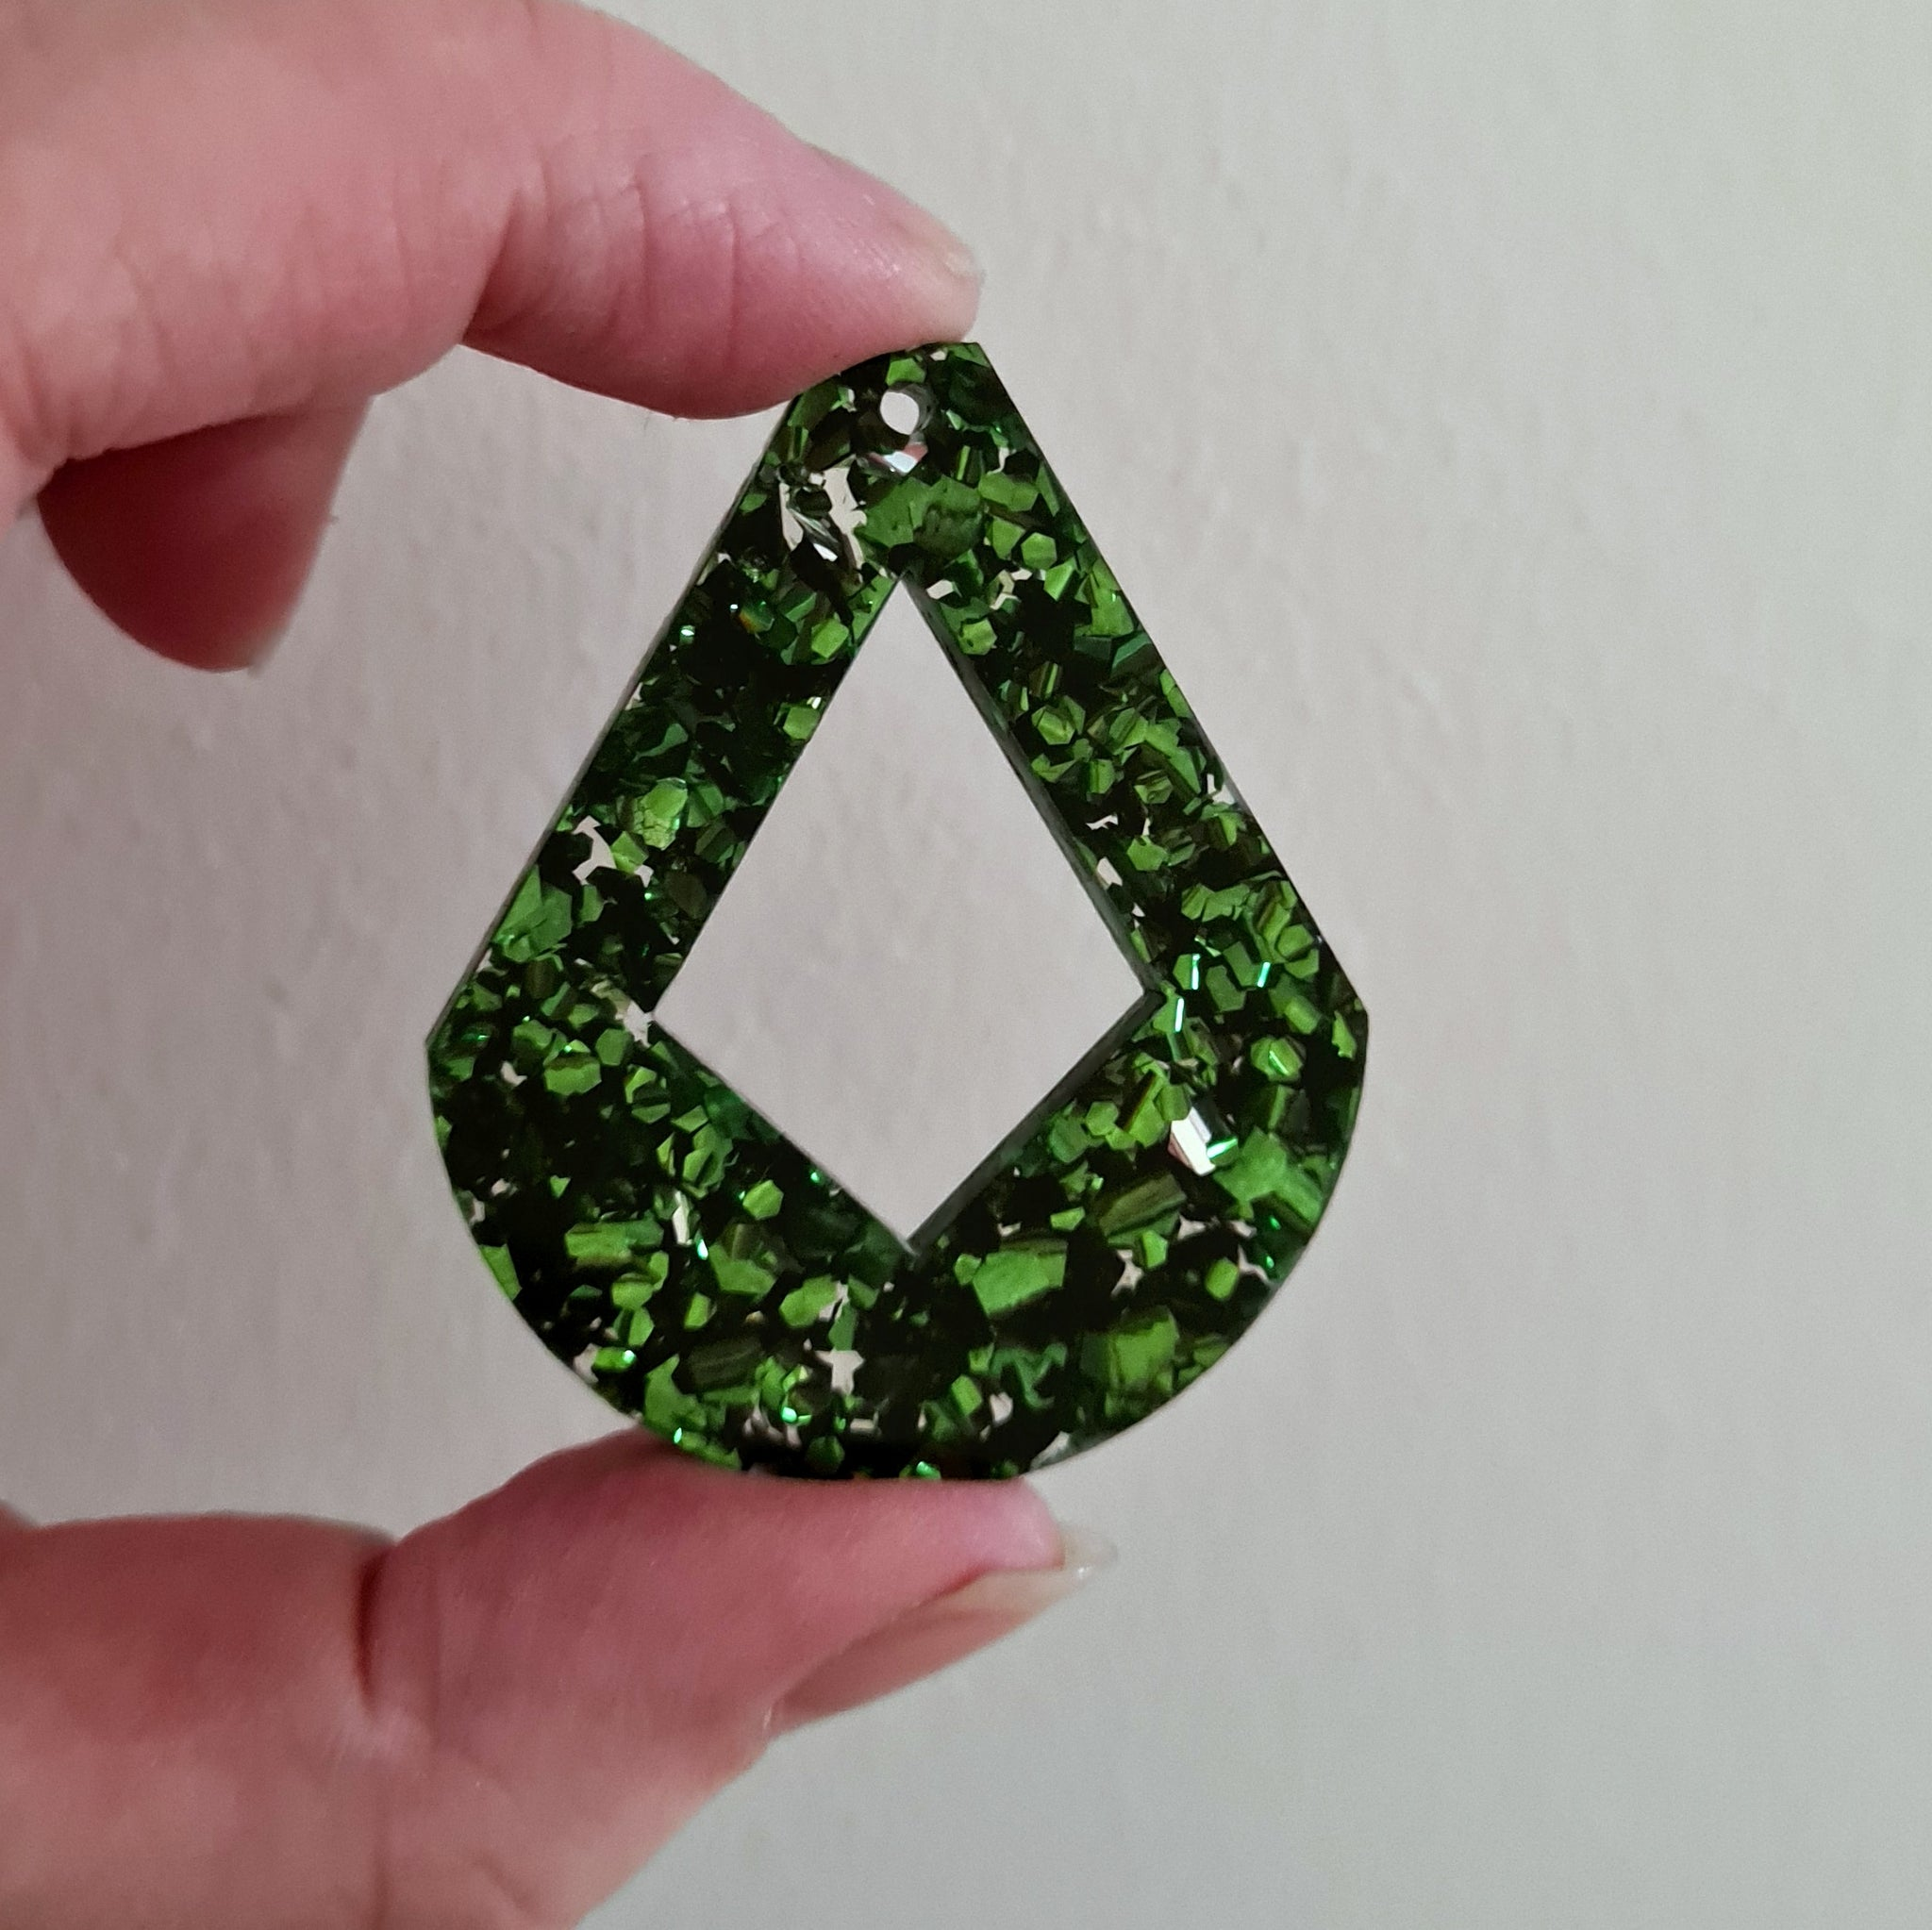 Large Green Foil Drop Diamond - 13 pieces